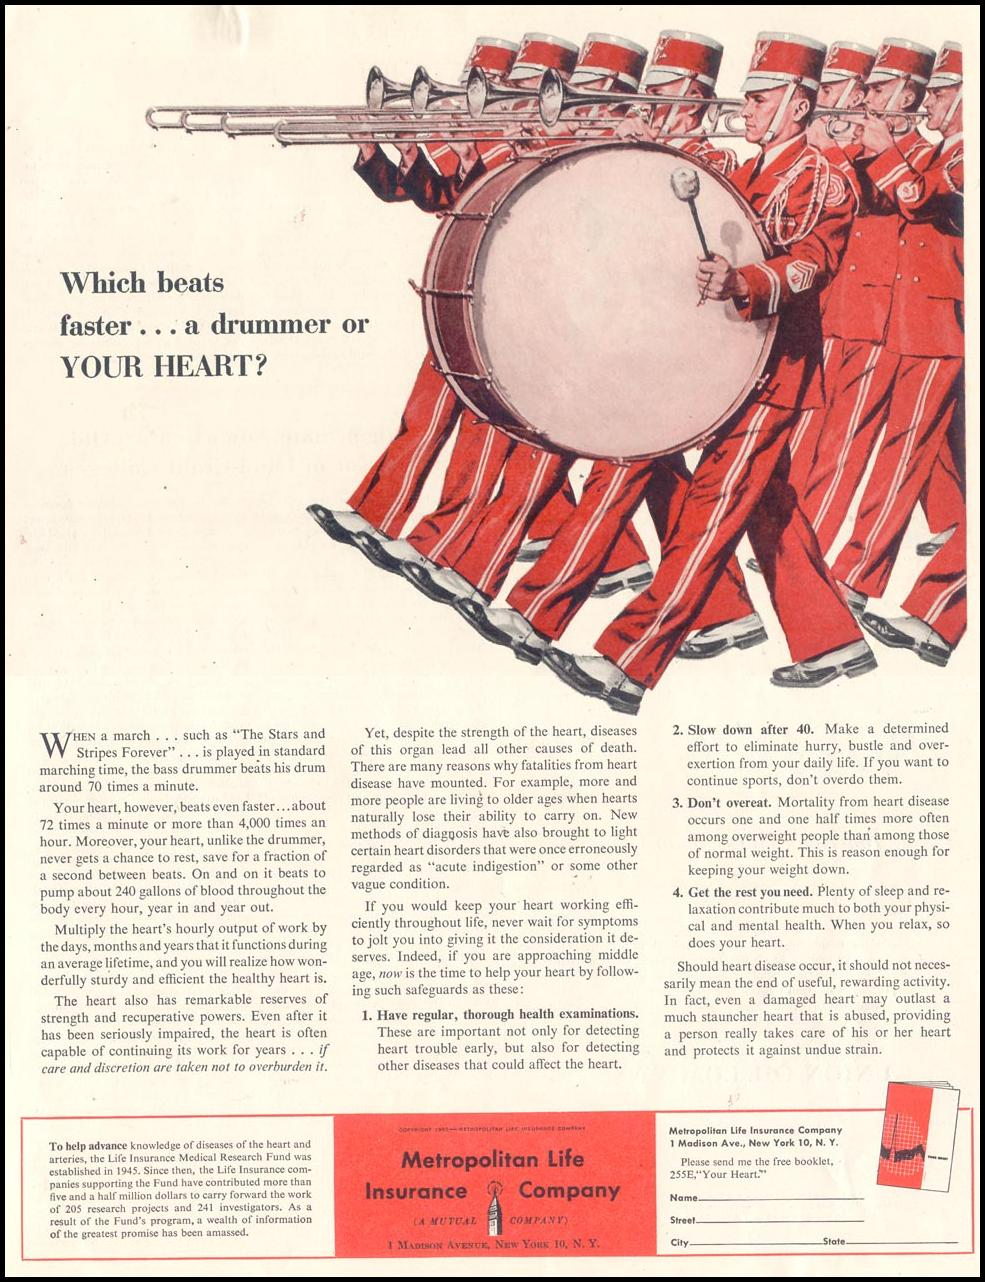 LIFE INSURANCE SATURDAY EVENING POST 02/05/1955 p. 11